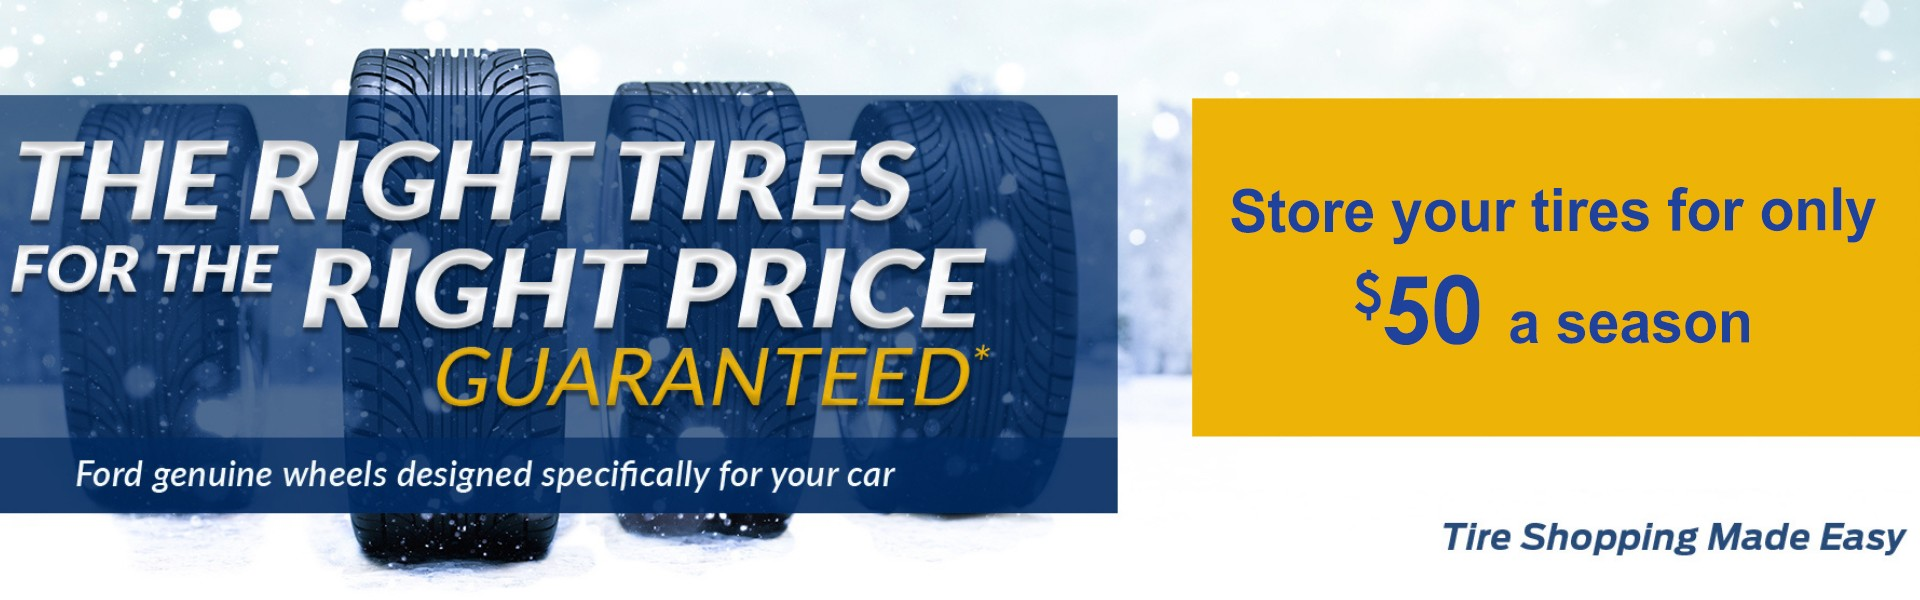 We Will NOT Be Beat. Ask Us About Our Price Match Guarantee Find the Right Tires for the Right Price